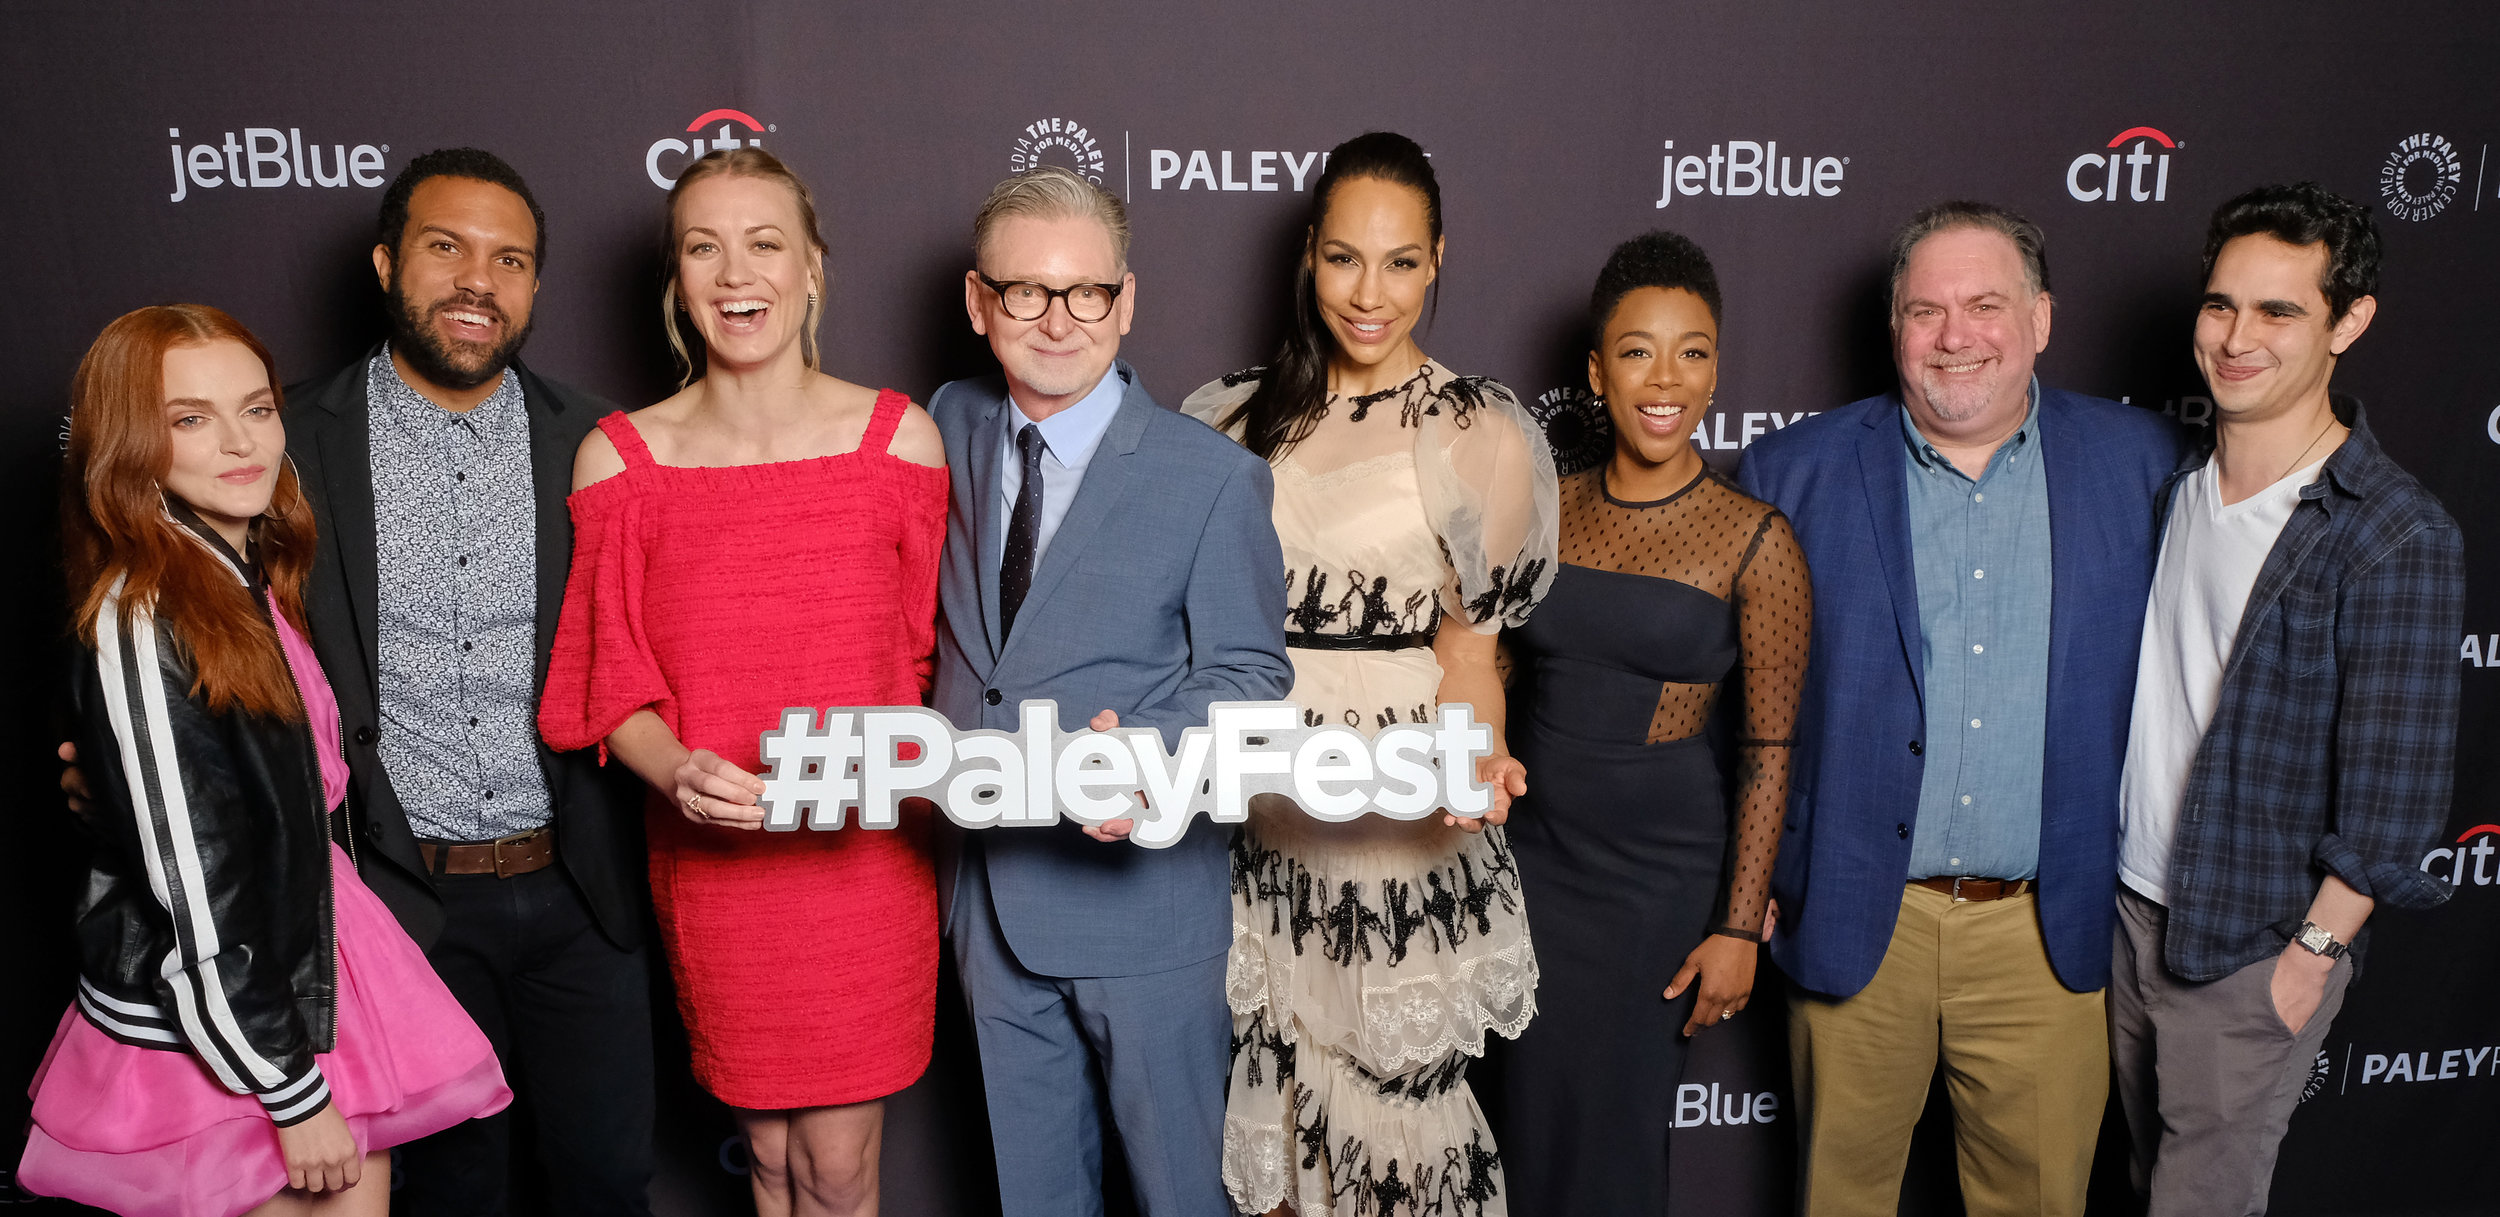 Cast and creatives of The Handmaid's Tale arrive at PaleyFest LA 2018 honoring The Handmaid's Tale, presented by The Paley Center for Media, at the DOLBY THEATRE on March 18, 2018 in Hollywood, California. Photo Credit:Michael Bulbenko for the Paley Center